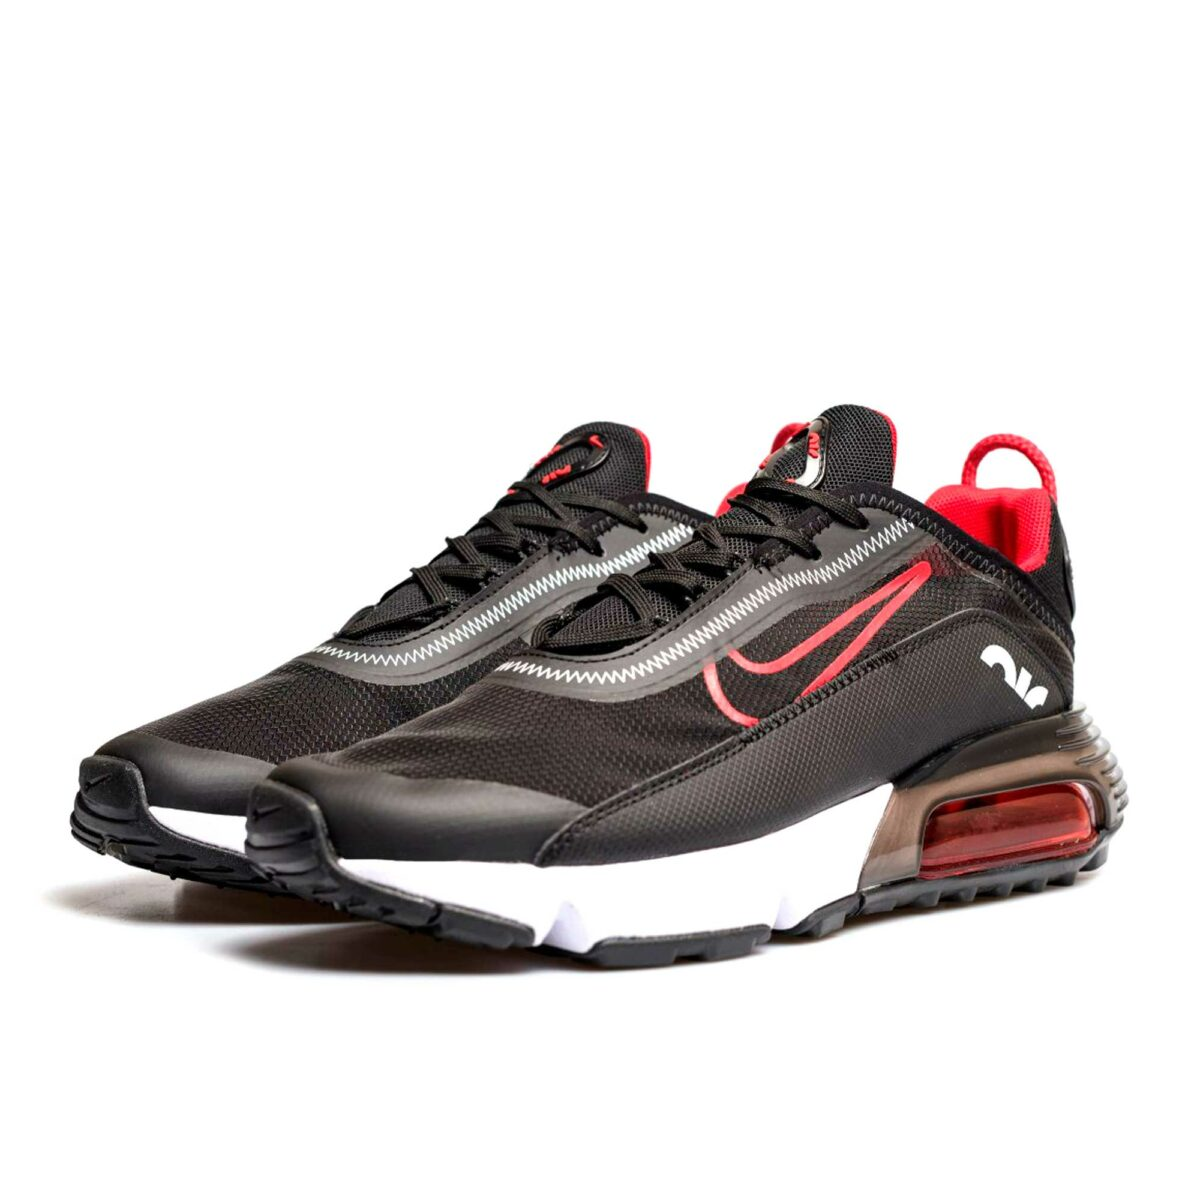 nike air max 2090 black red CT7698_010 купить